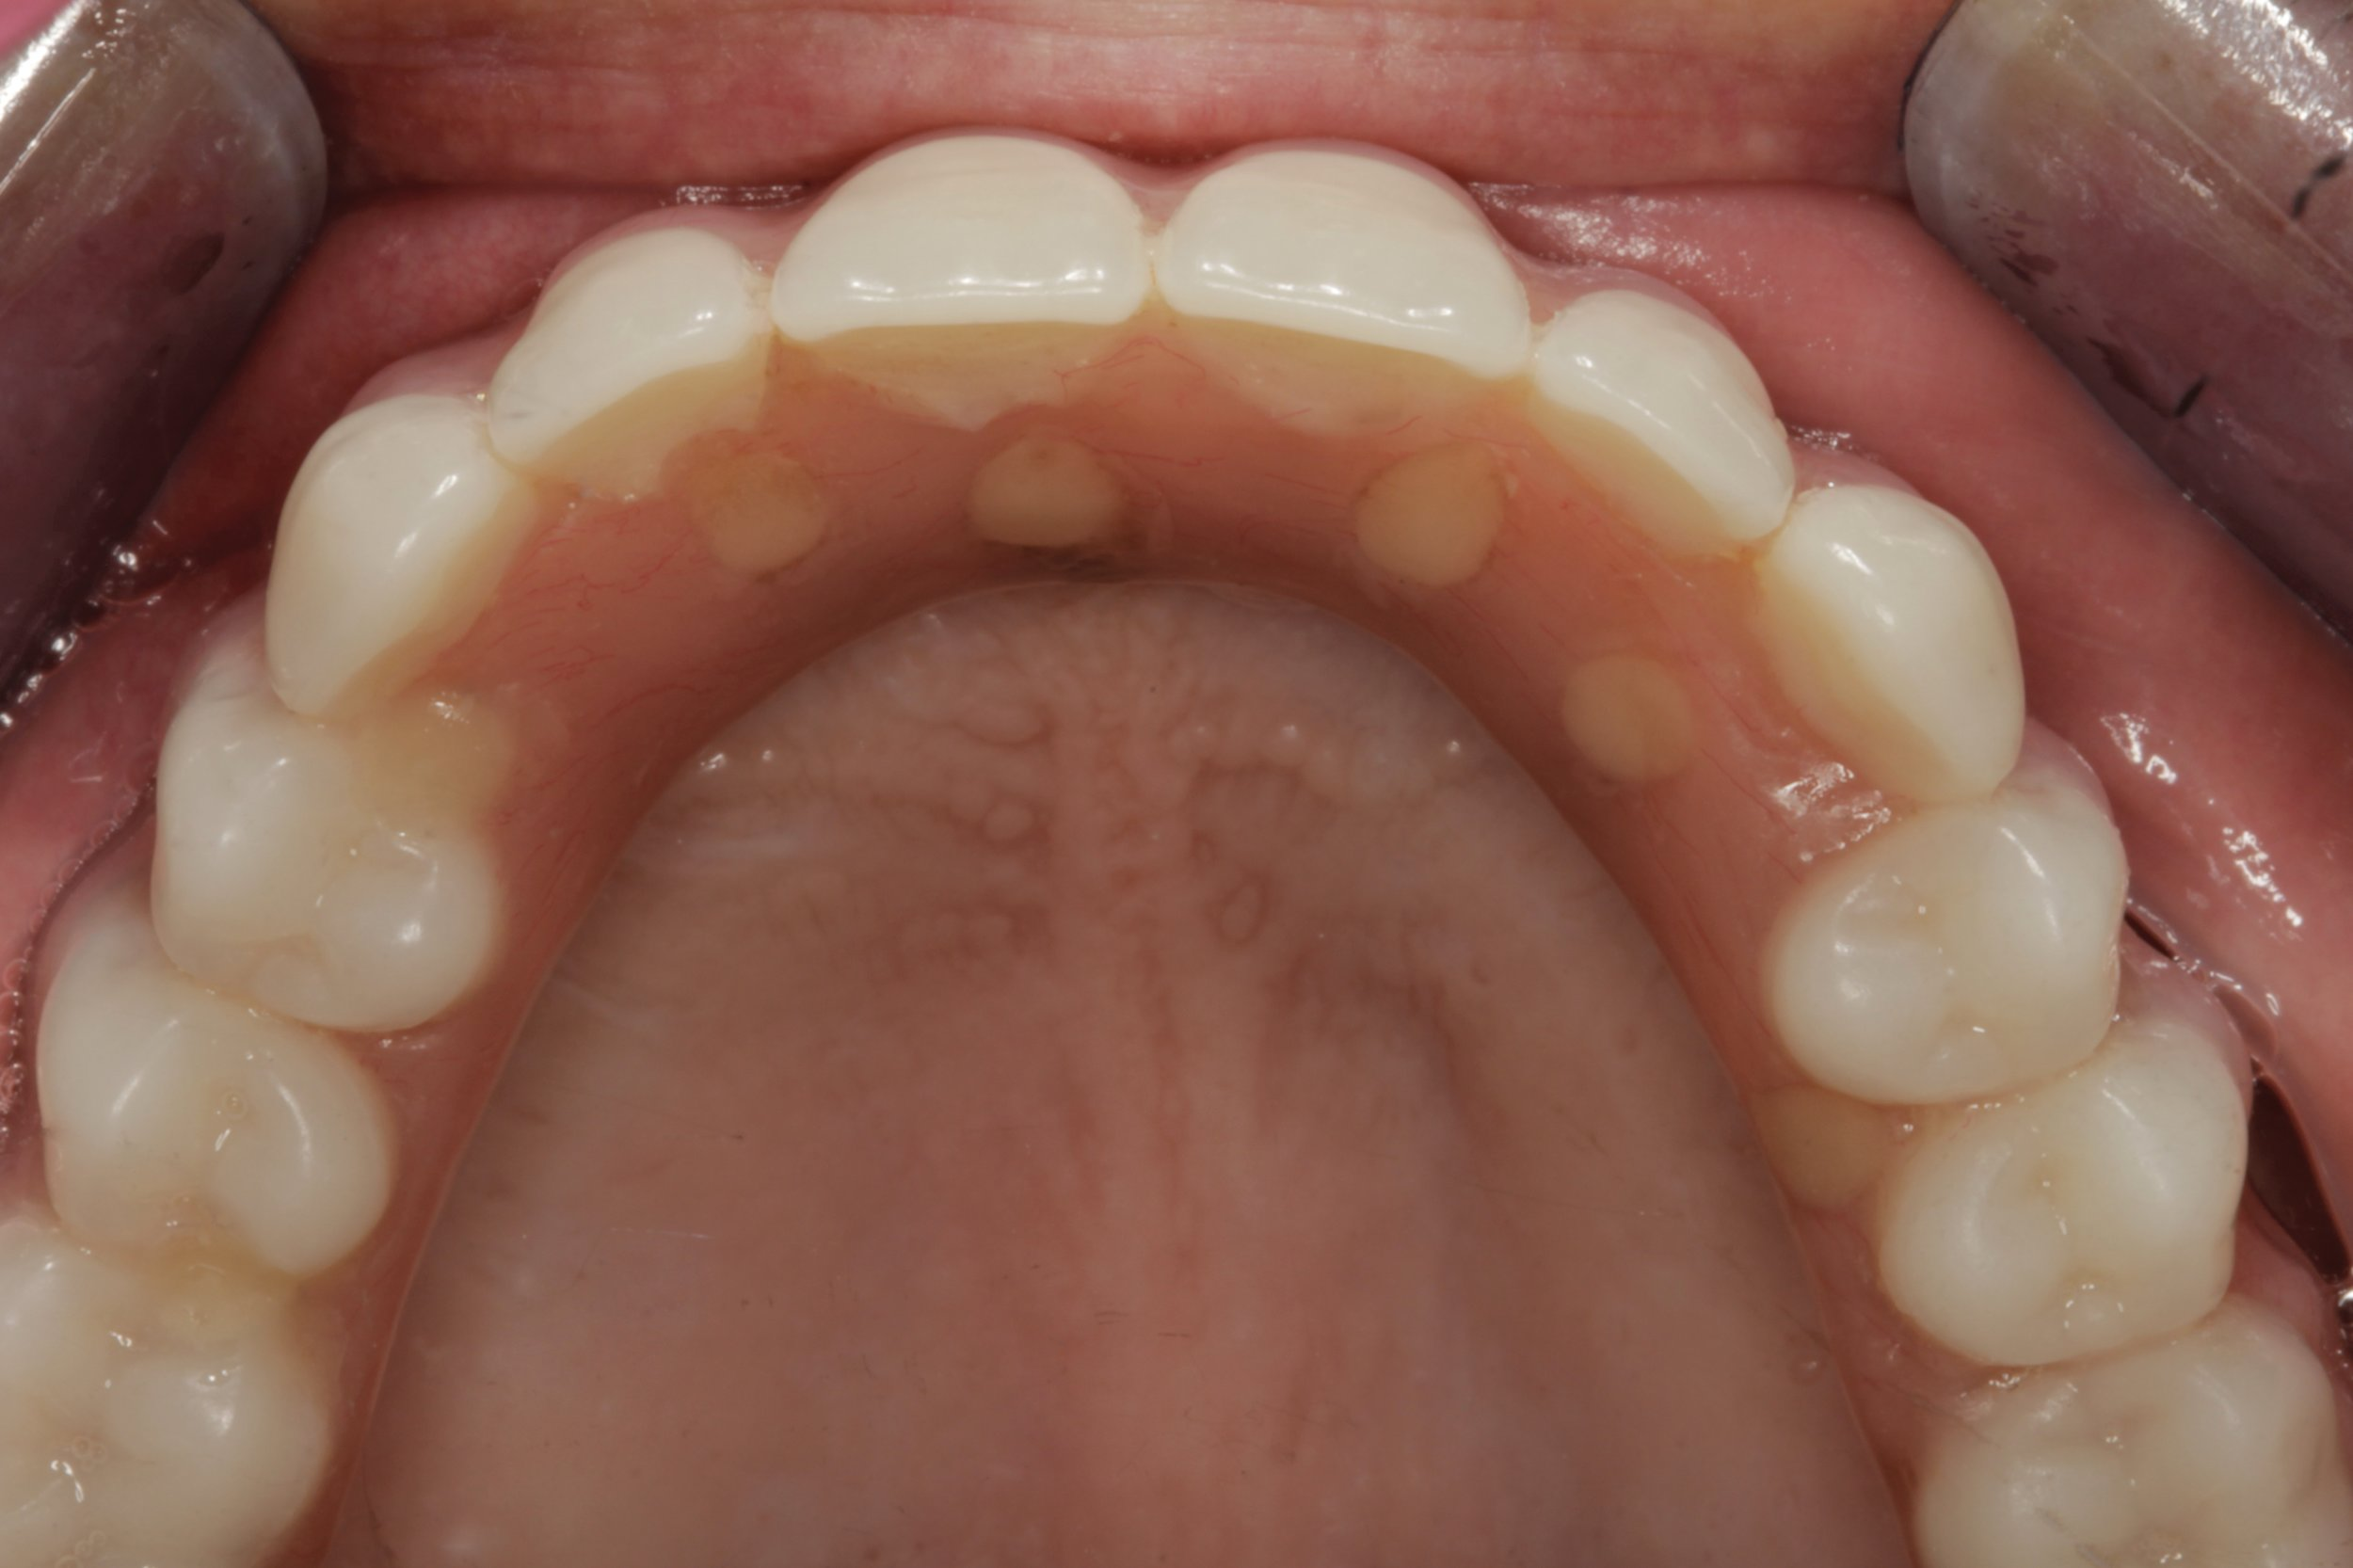 Top hybrid denture - the roof of the mouth is exposed lending to more comfort and better tasting of food